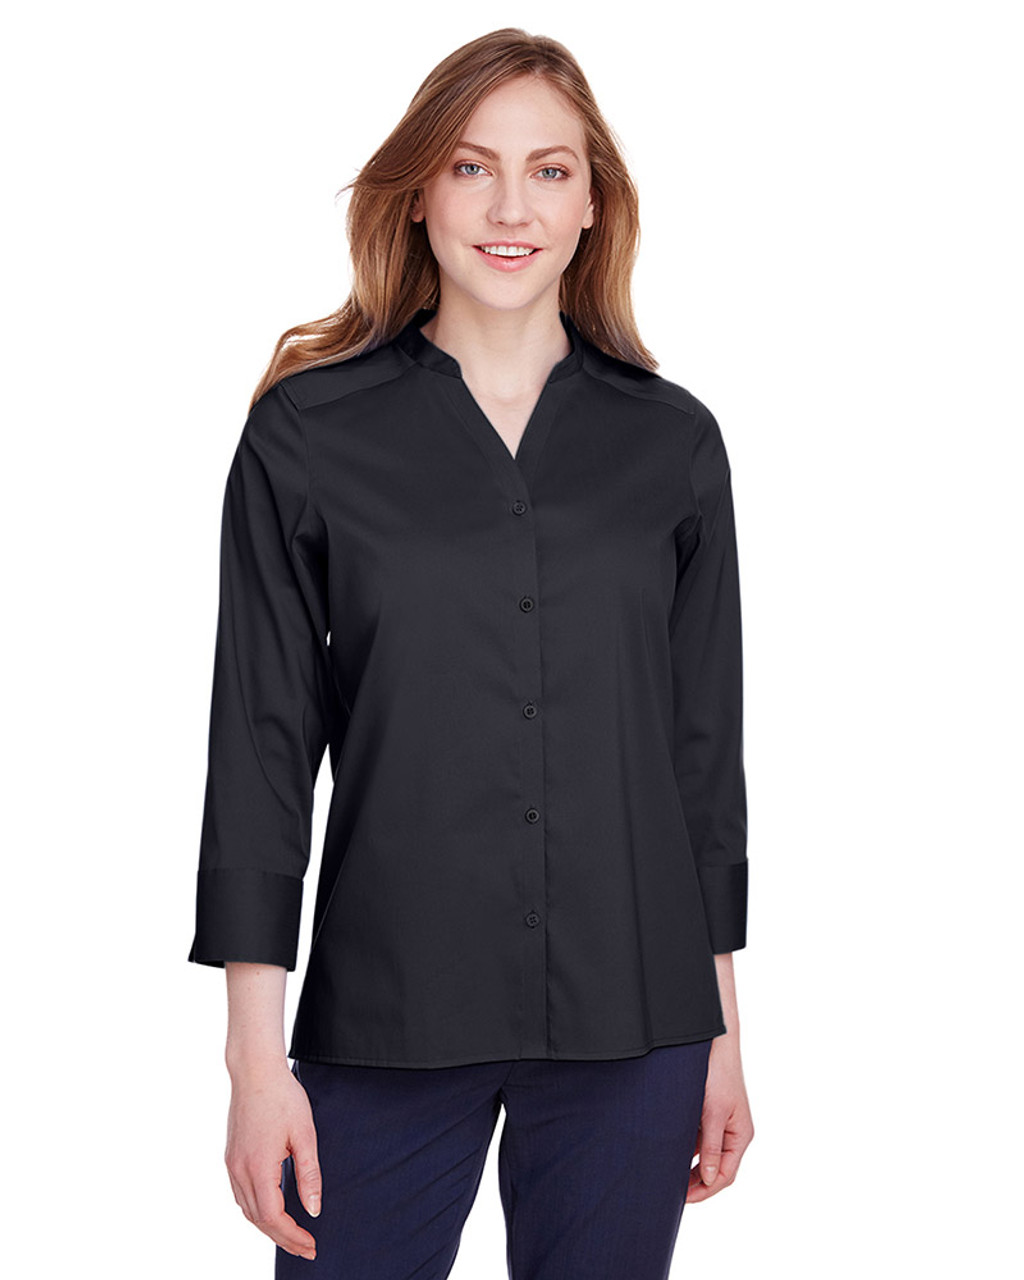 Black - DG560W Devon & Jones Ladies' Crown Collection™ Stretch Broadcloth 3/4 Sleeve Blouse | Blankclothing.ca